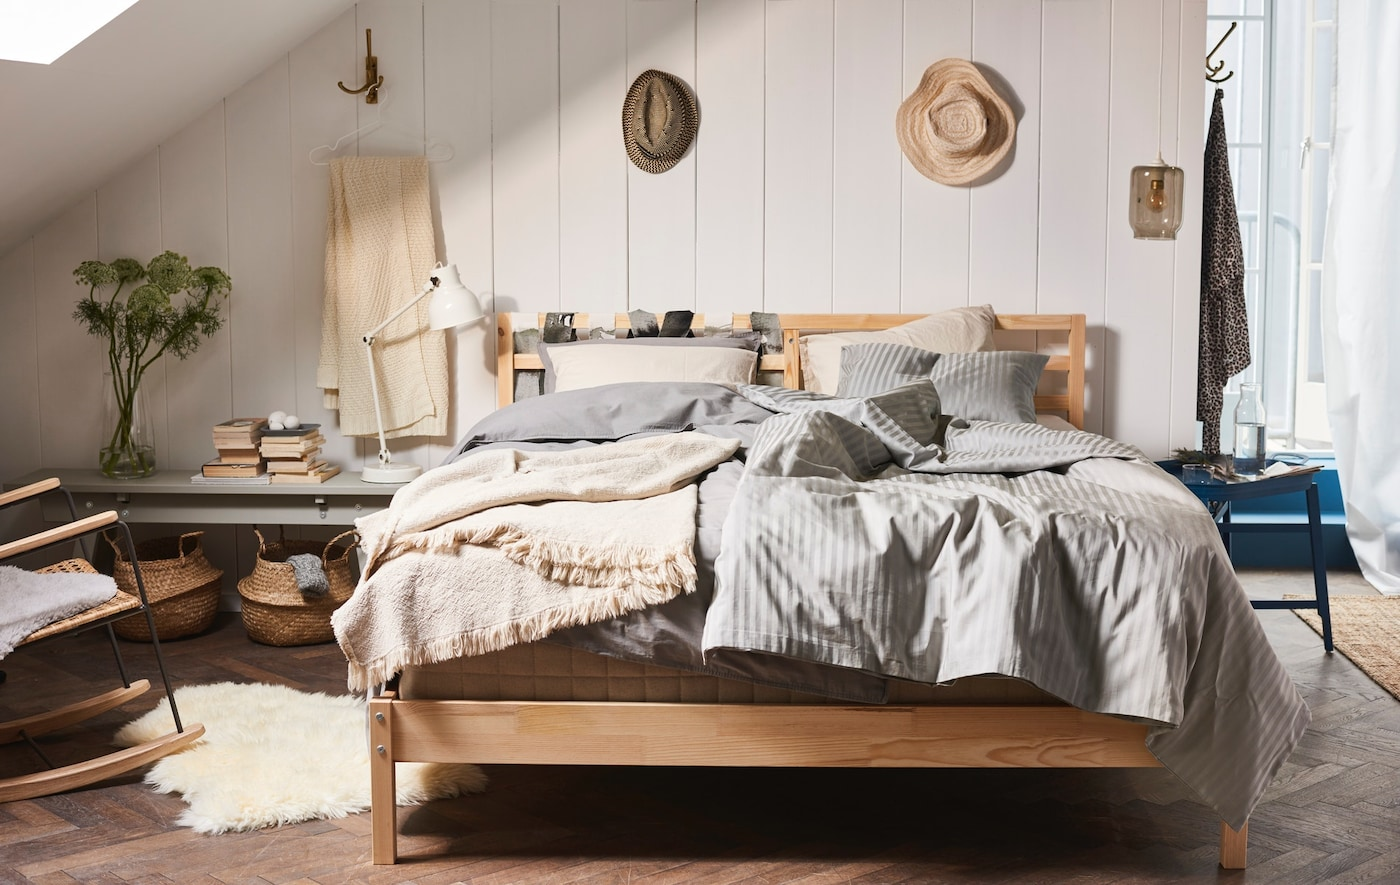 A cosy bedroom in earthy tones and materials. A wooden bed has many layers of textiles on top. In the back the white wooden panneling is visible.